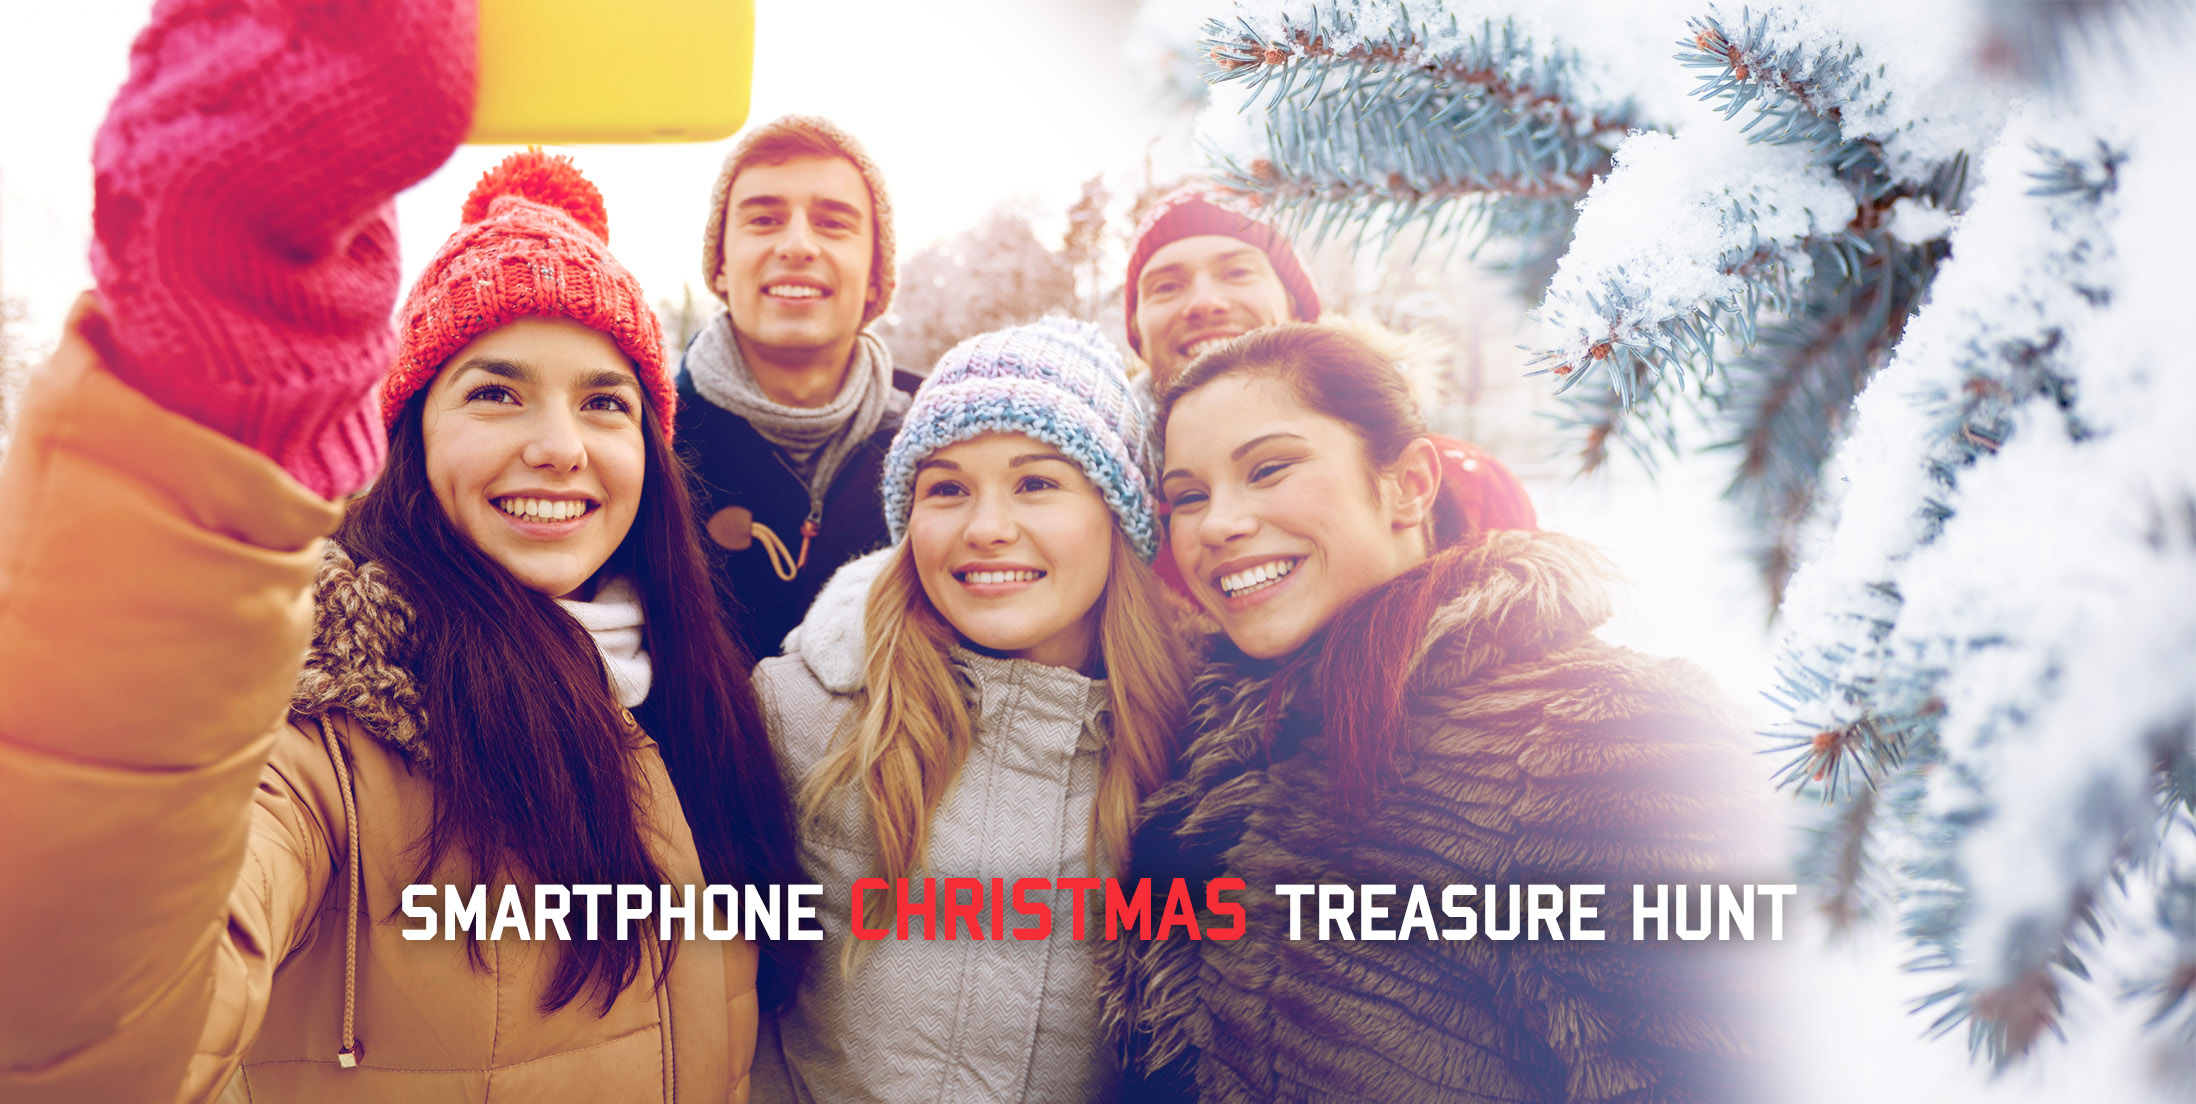 The Smartphone Xmas Treasure Hunt Team Building Activity Is Here